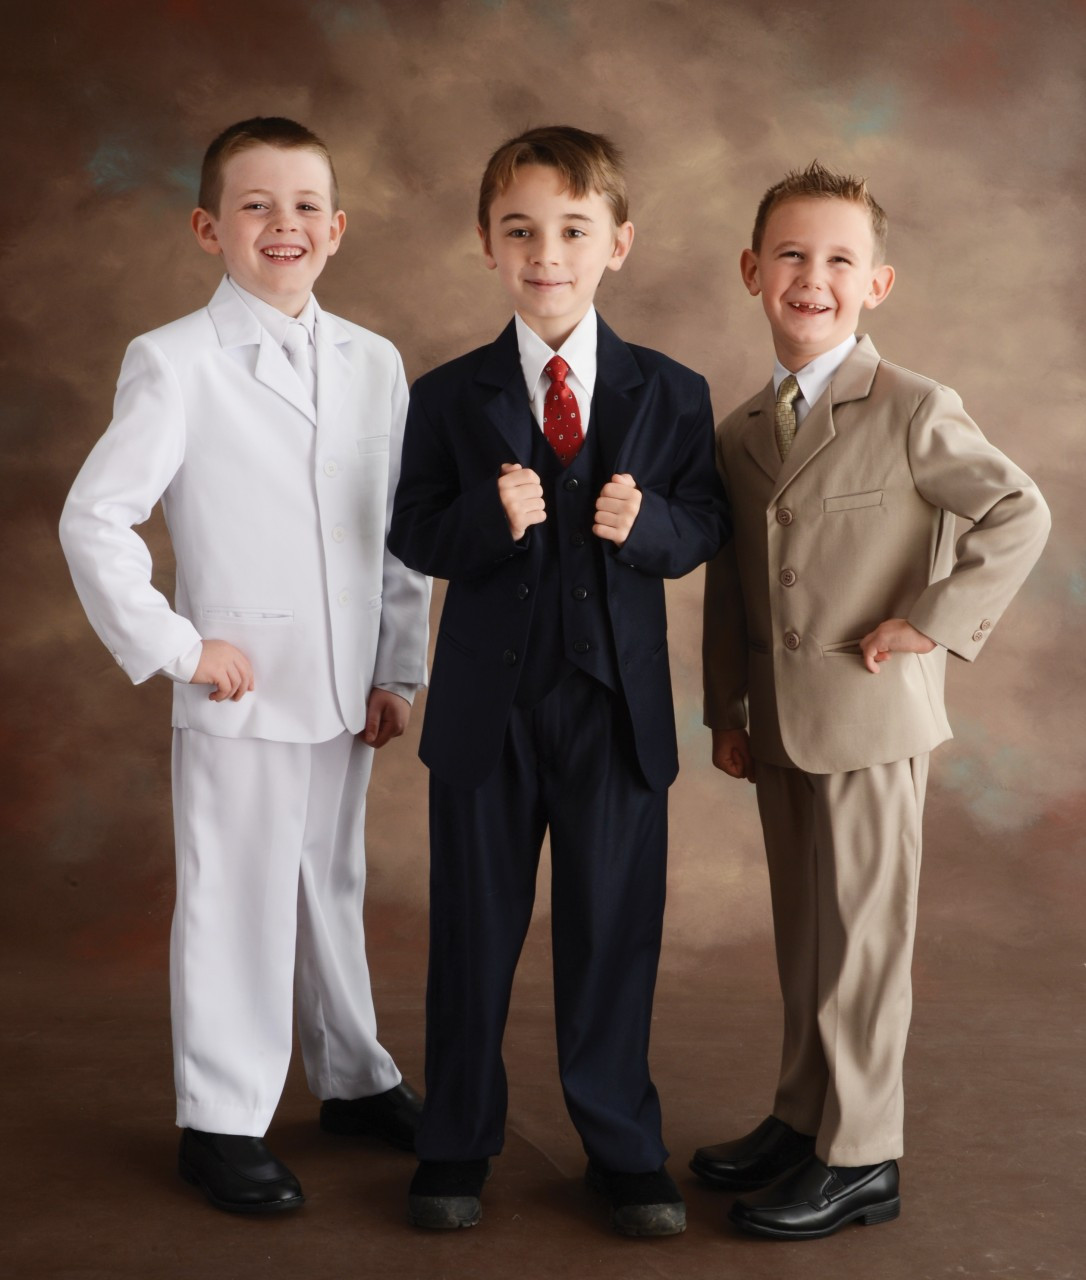 first communion boy images - photo #37